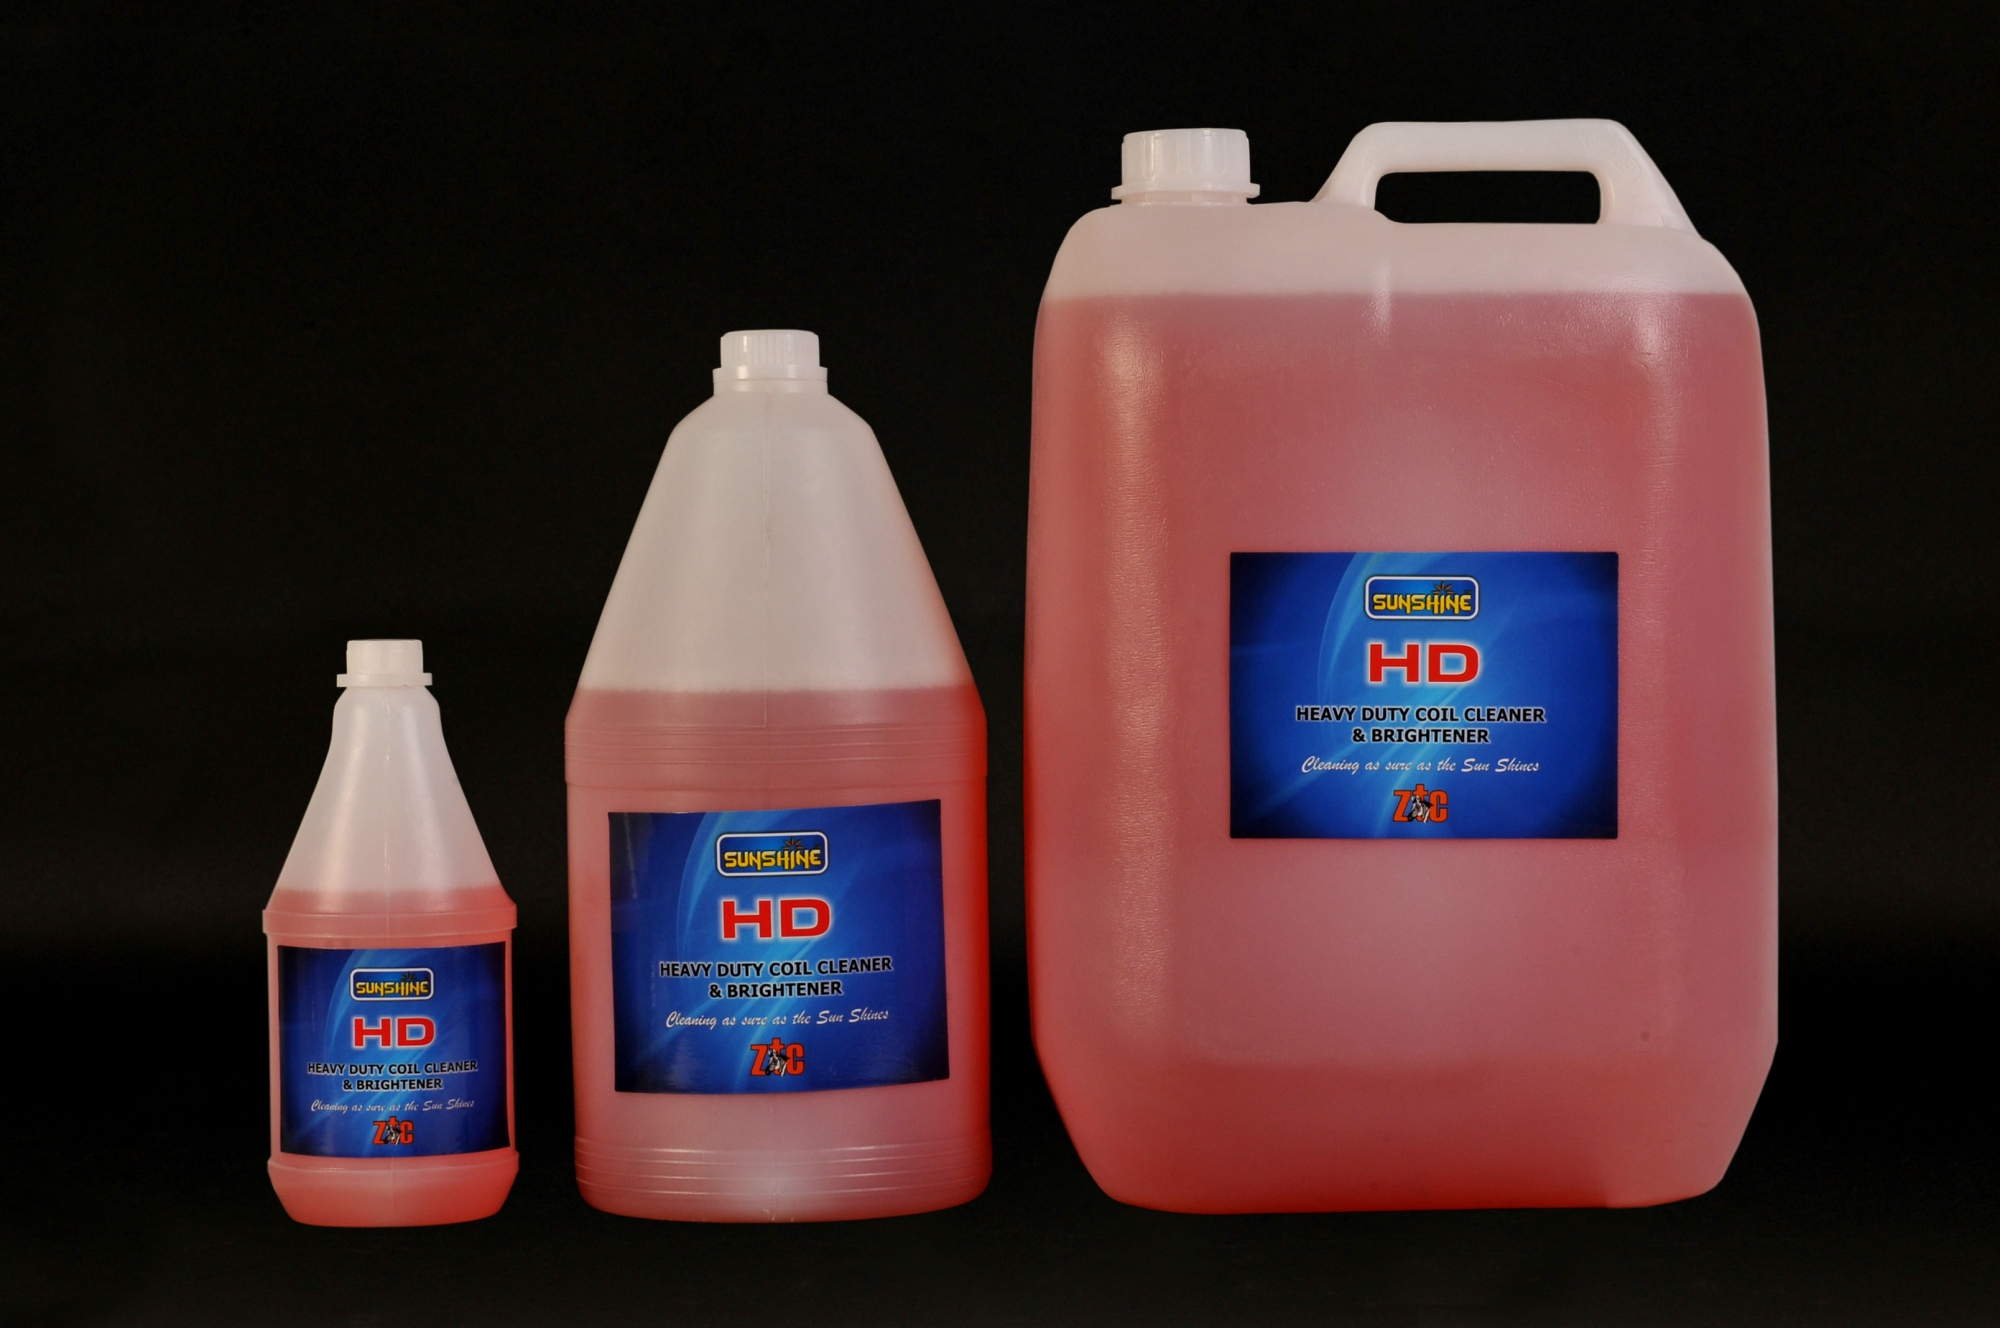 ac coil cleaner. 2000 air conditioning coil cleaningchemicals #16307d 1328 ac coil cleaner